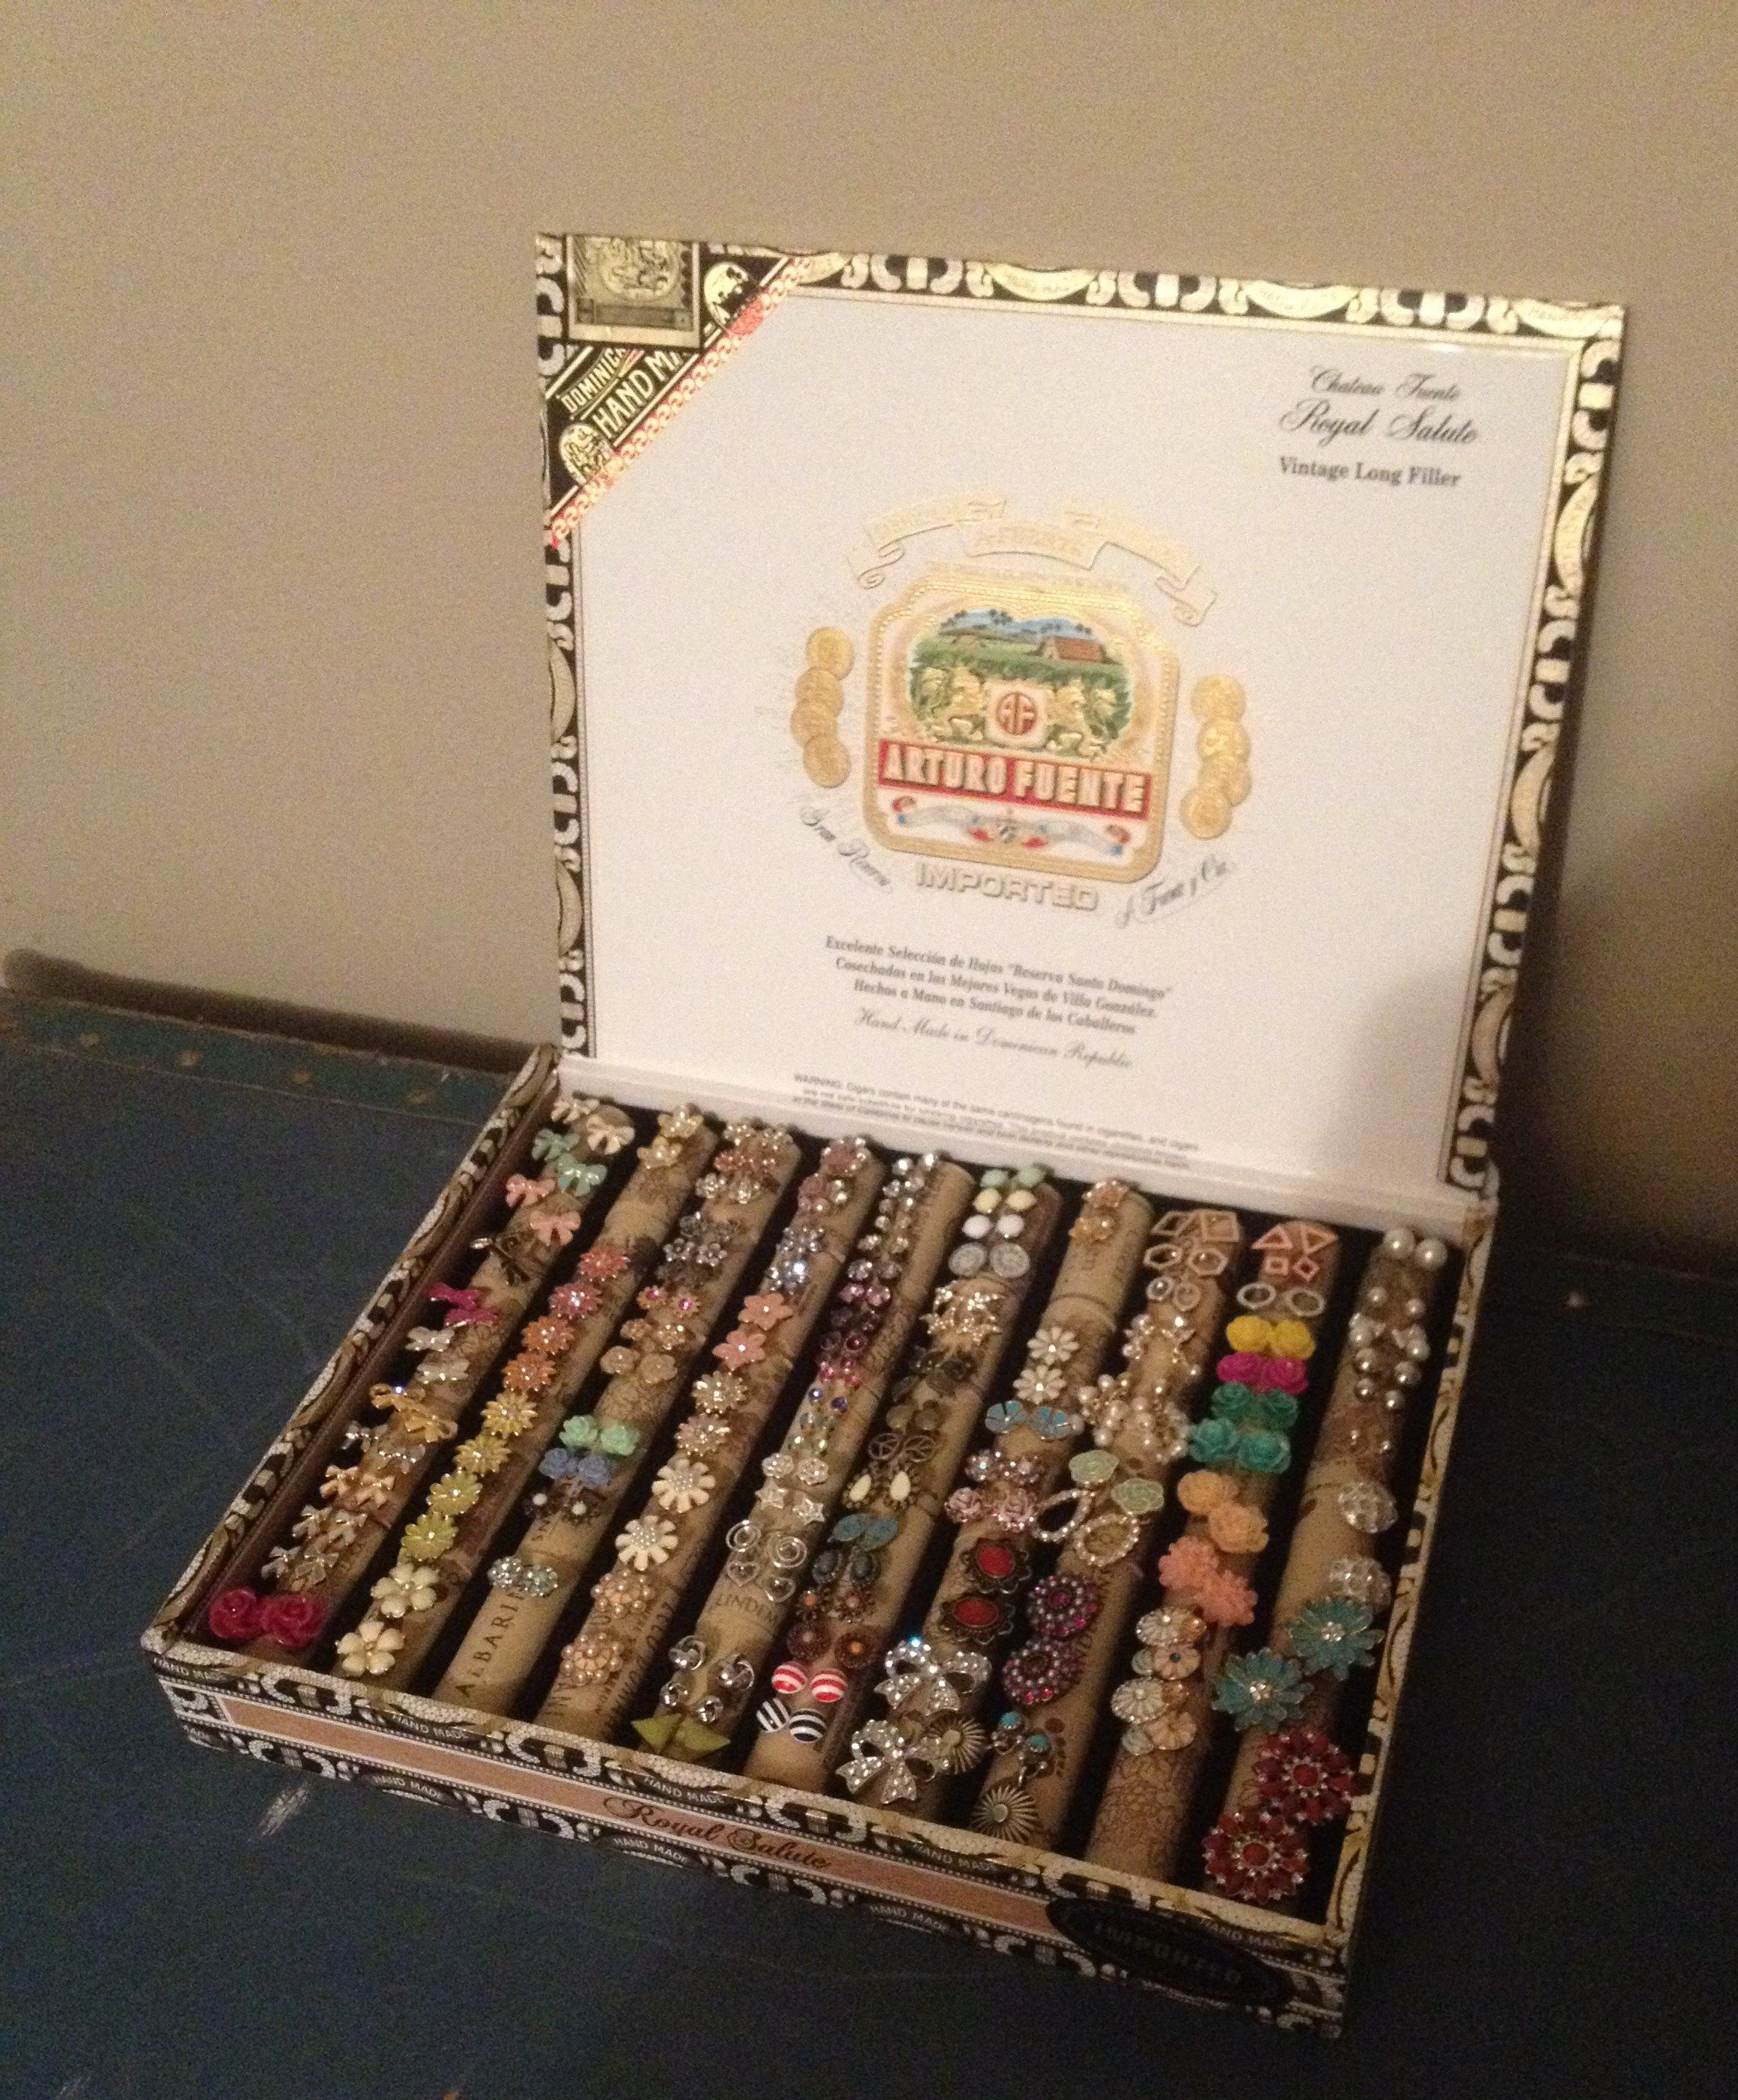 Cigar Box earring holder for stud earrings DIY